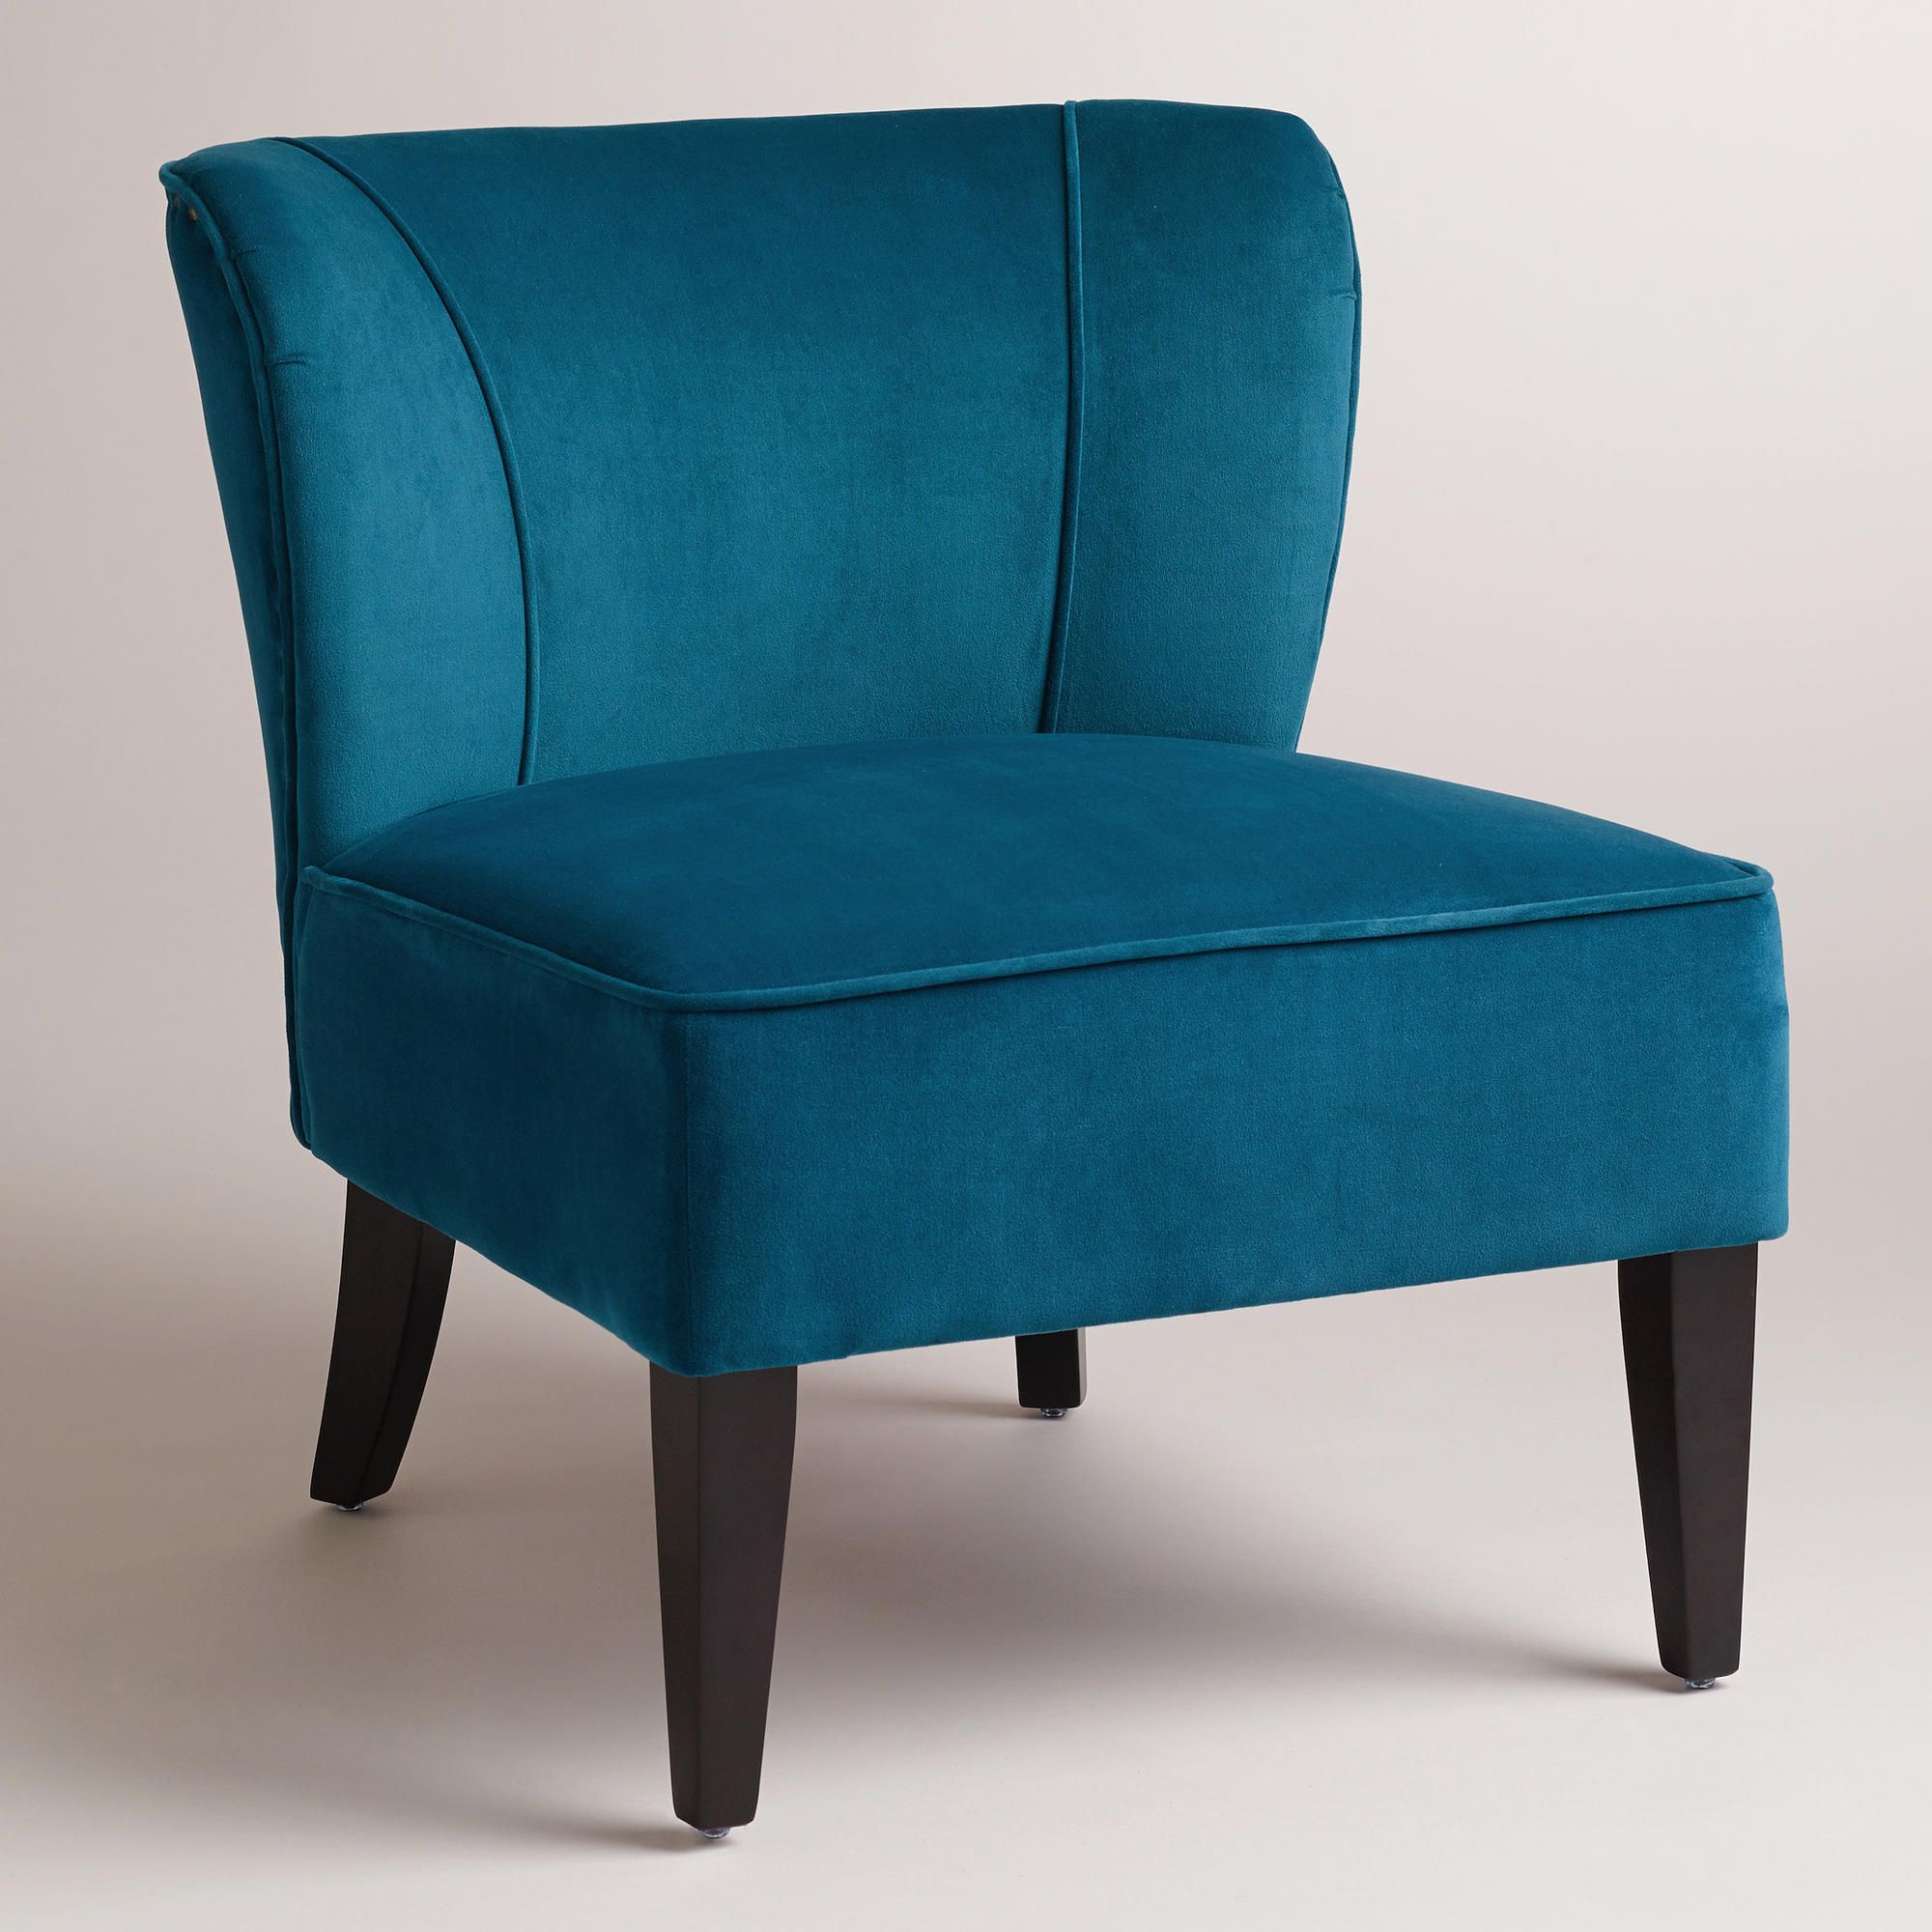 Peacock Blue Chair Blue Accent Chairs Furniture Living Room Chairs